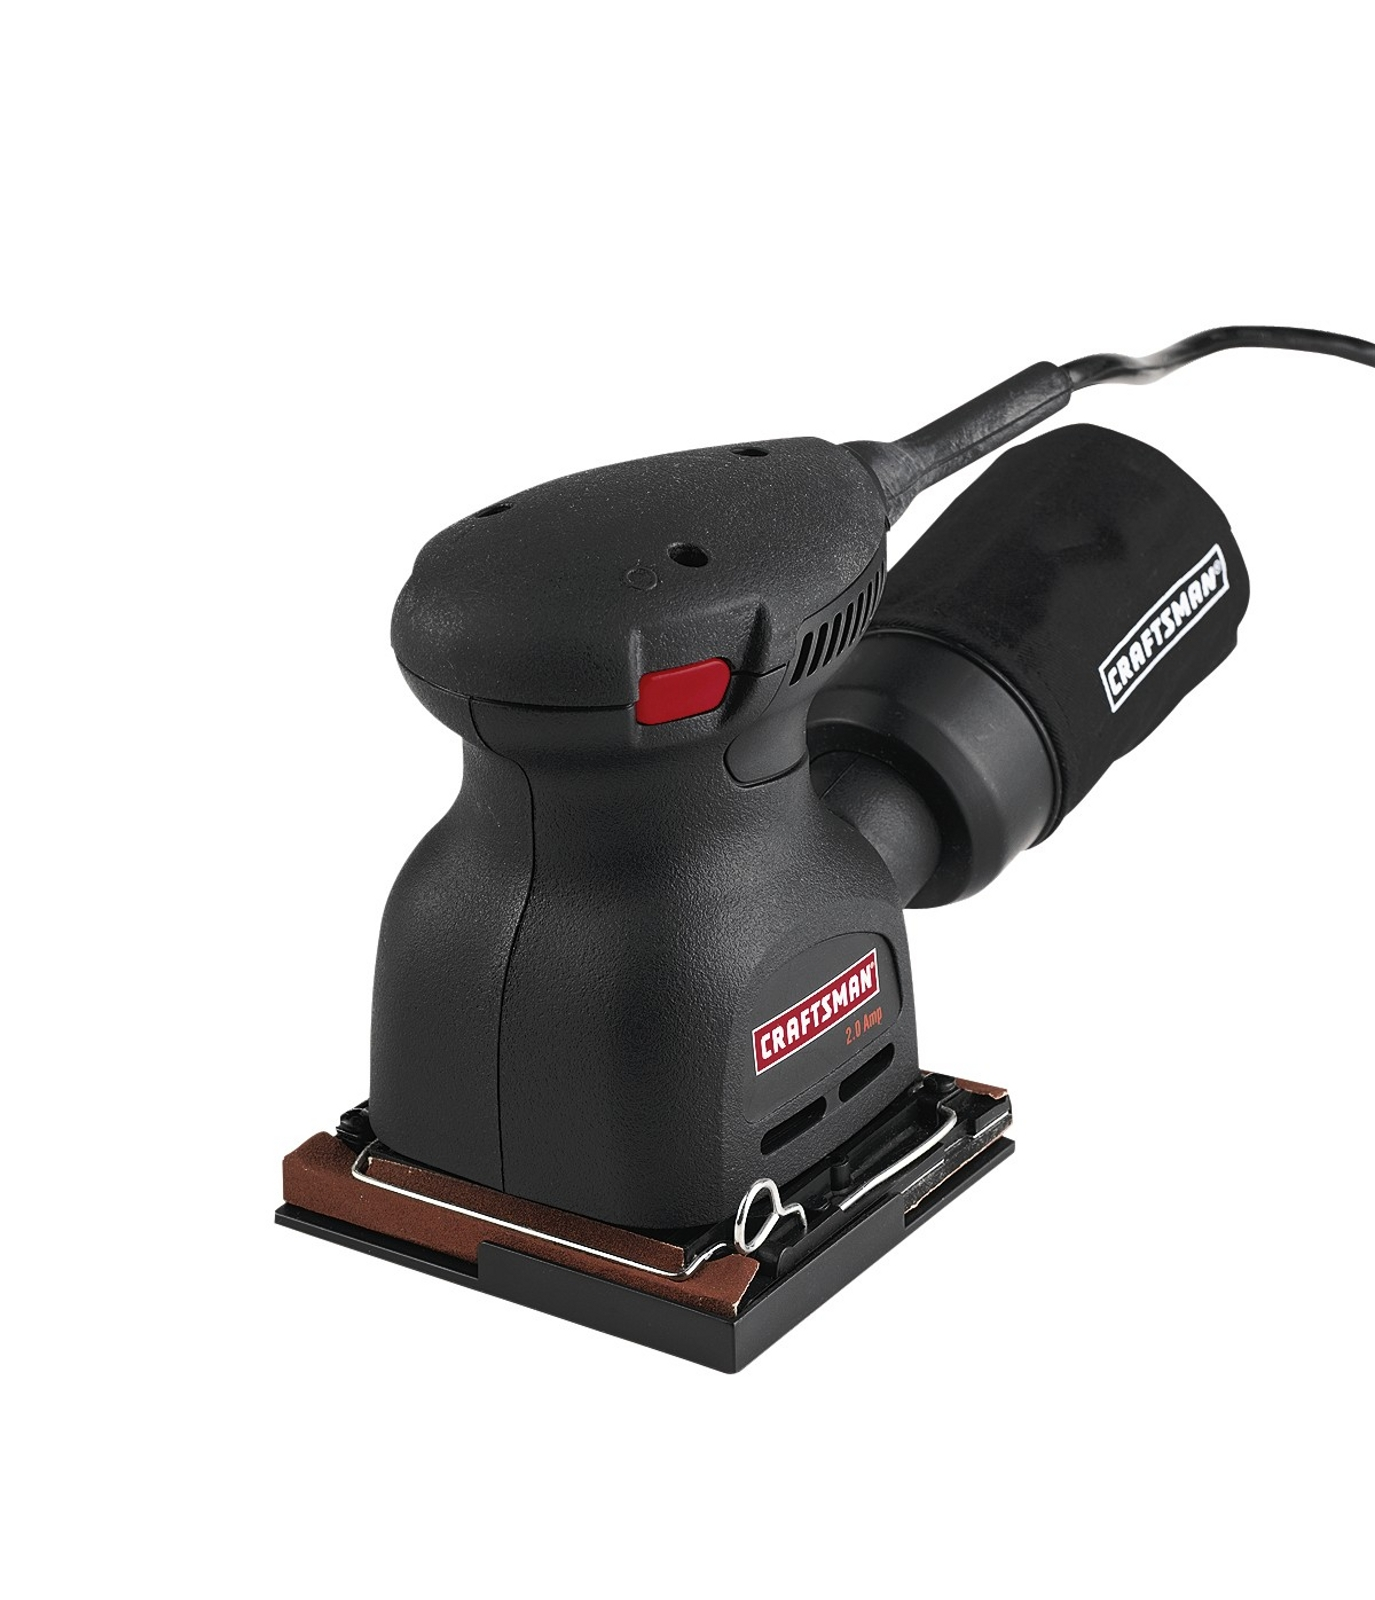 Craftsman 1/4 Sheet Pad Sander